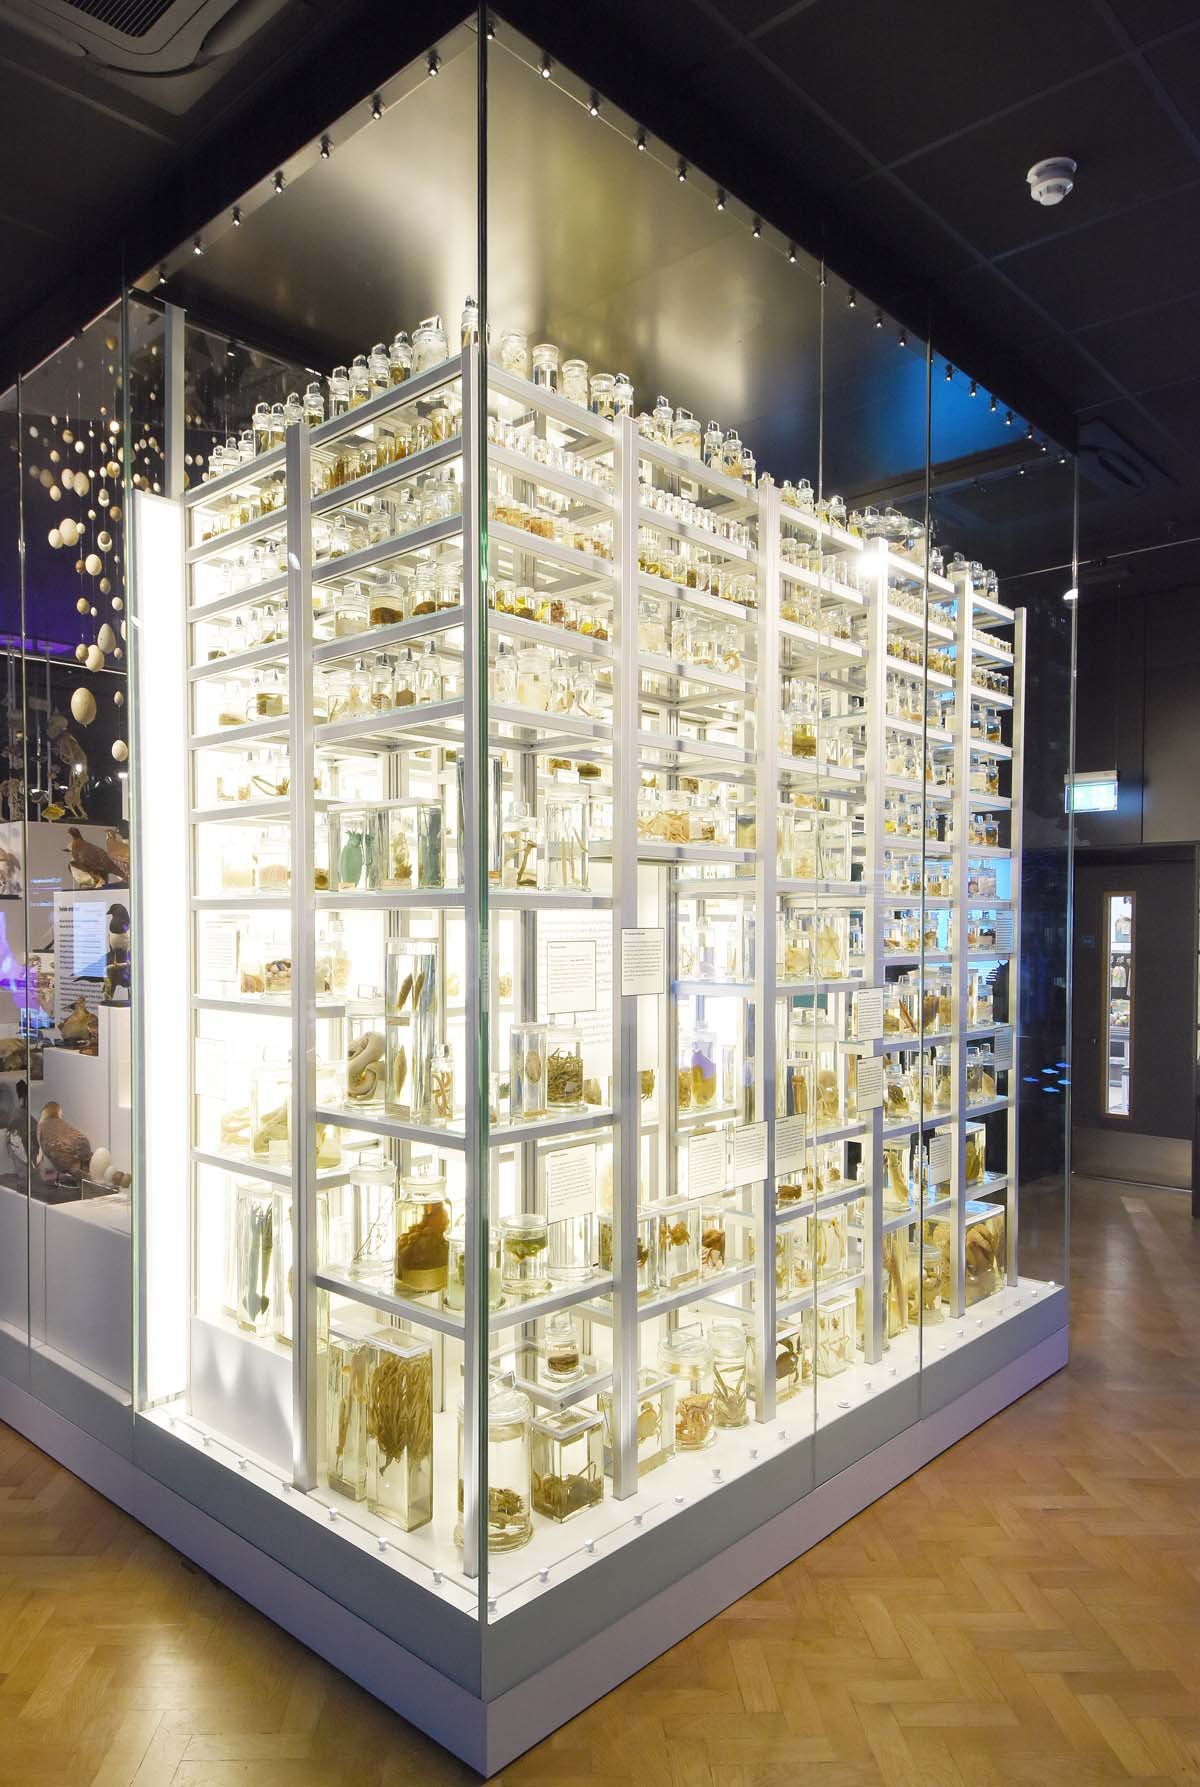 photo of display case filled with natural history specimens